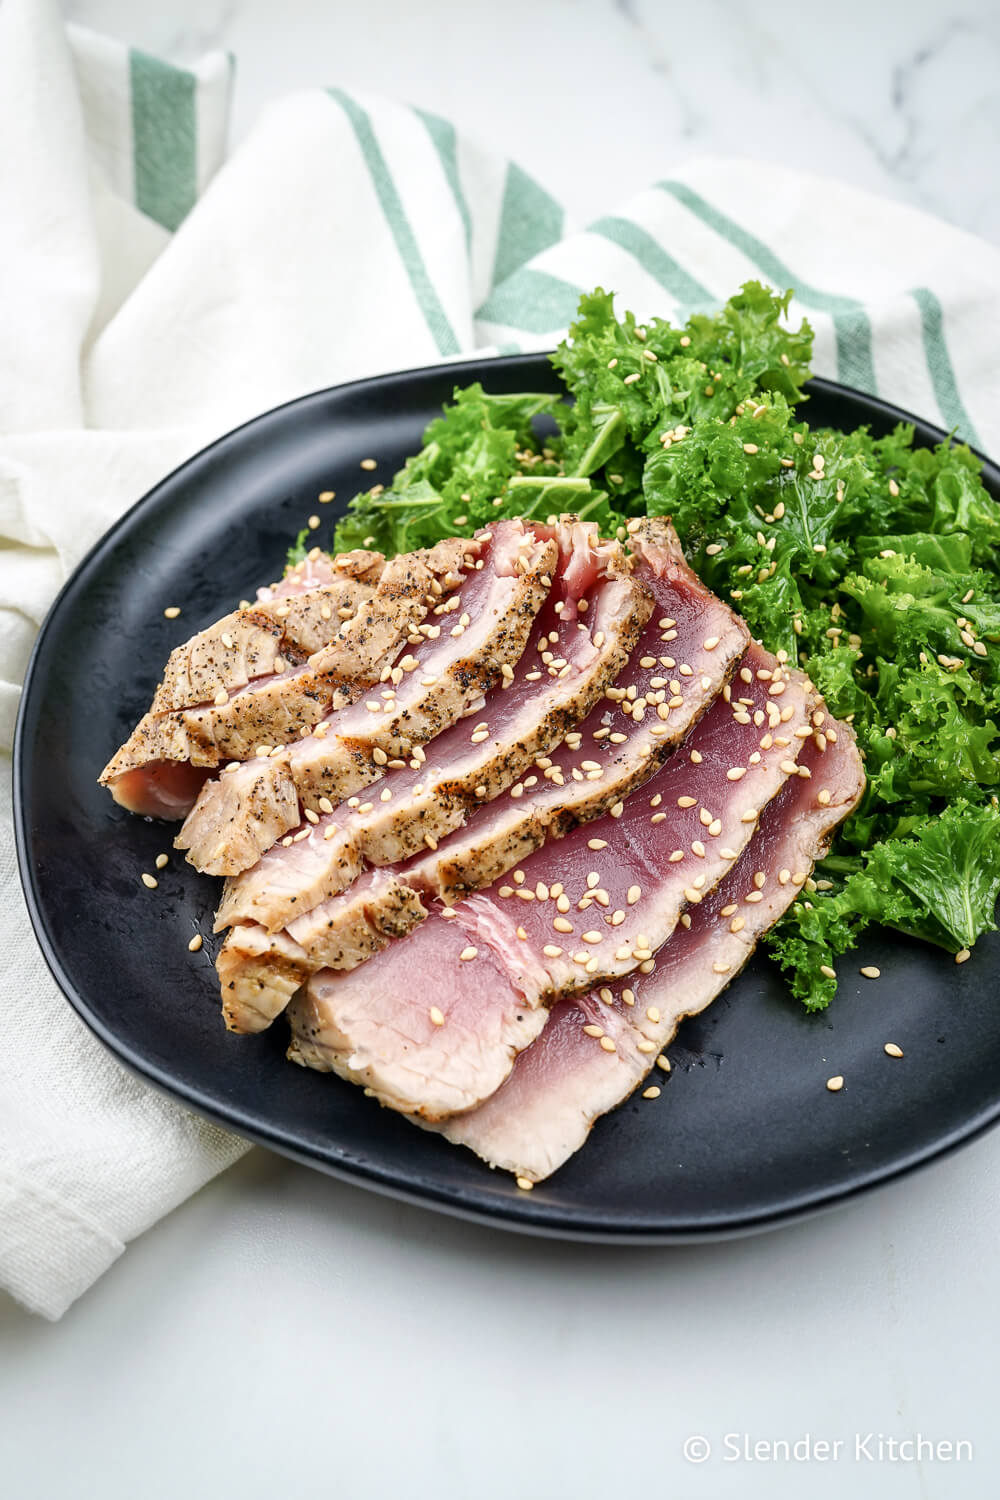 Grilled tuna steak on a black plate with kale salad and a green and white napkin.